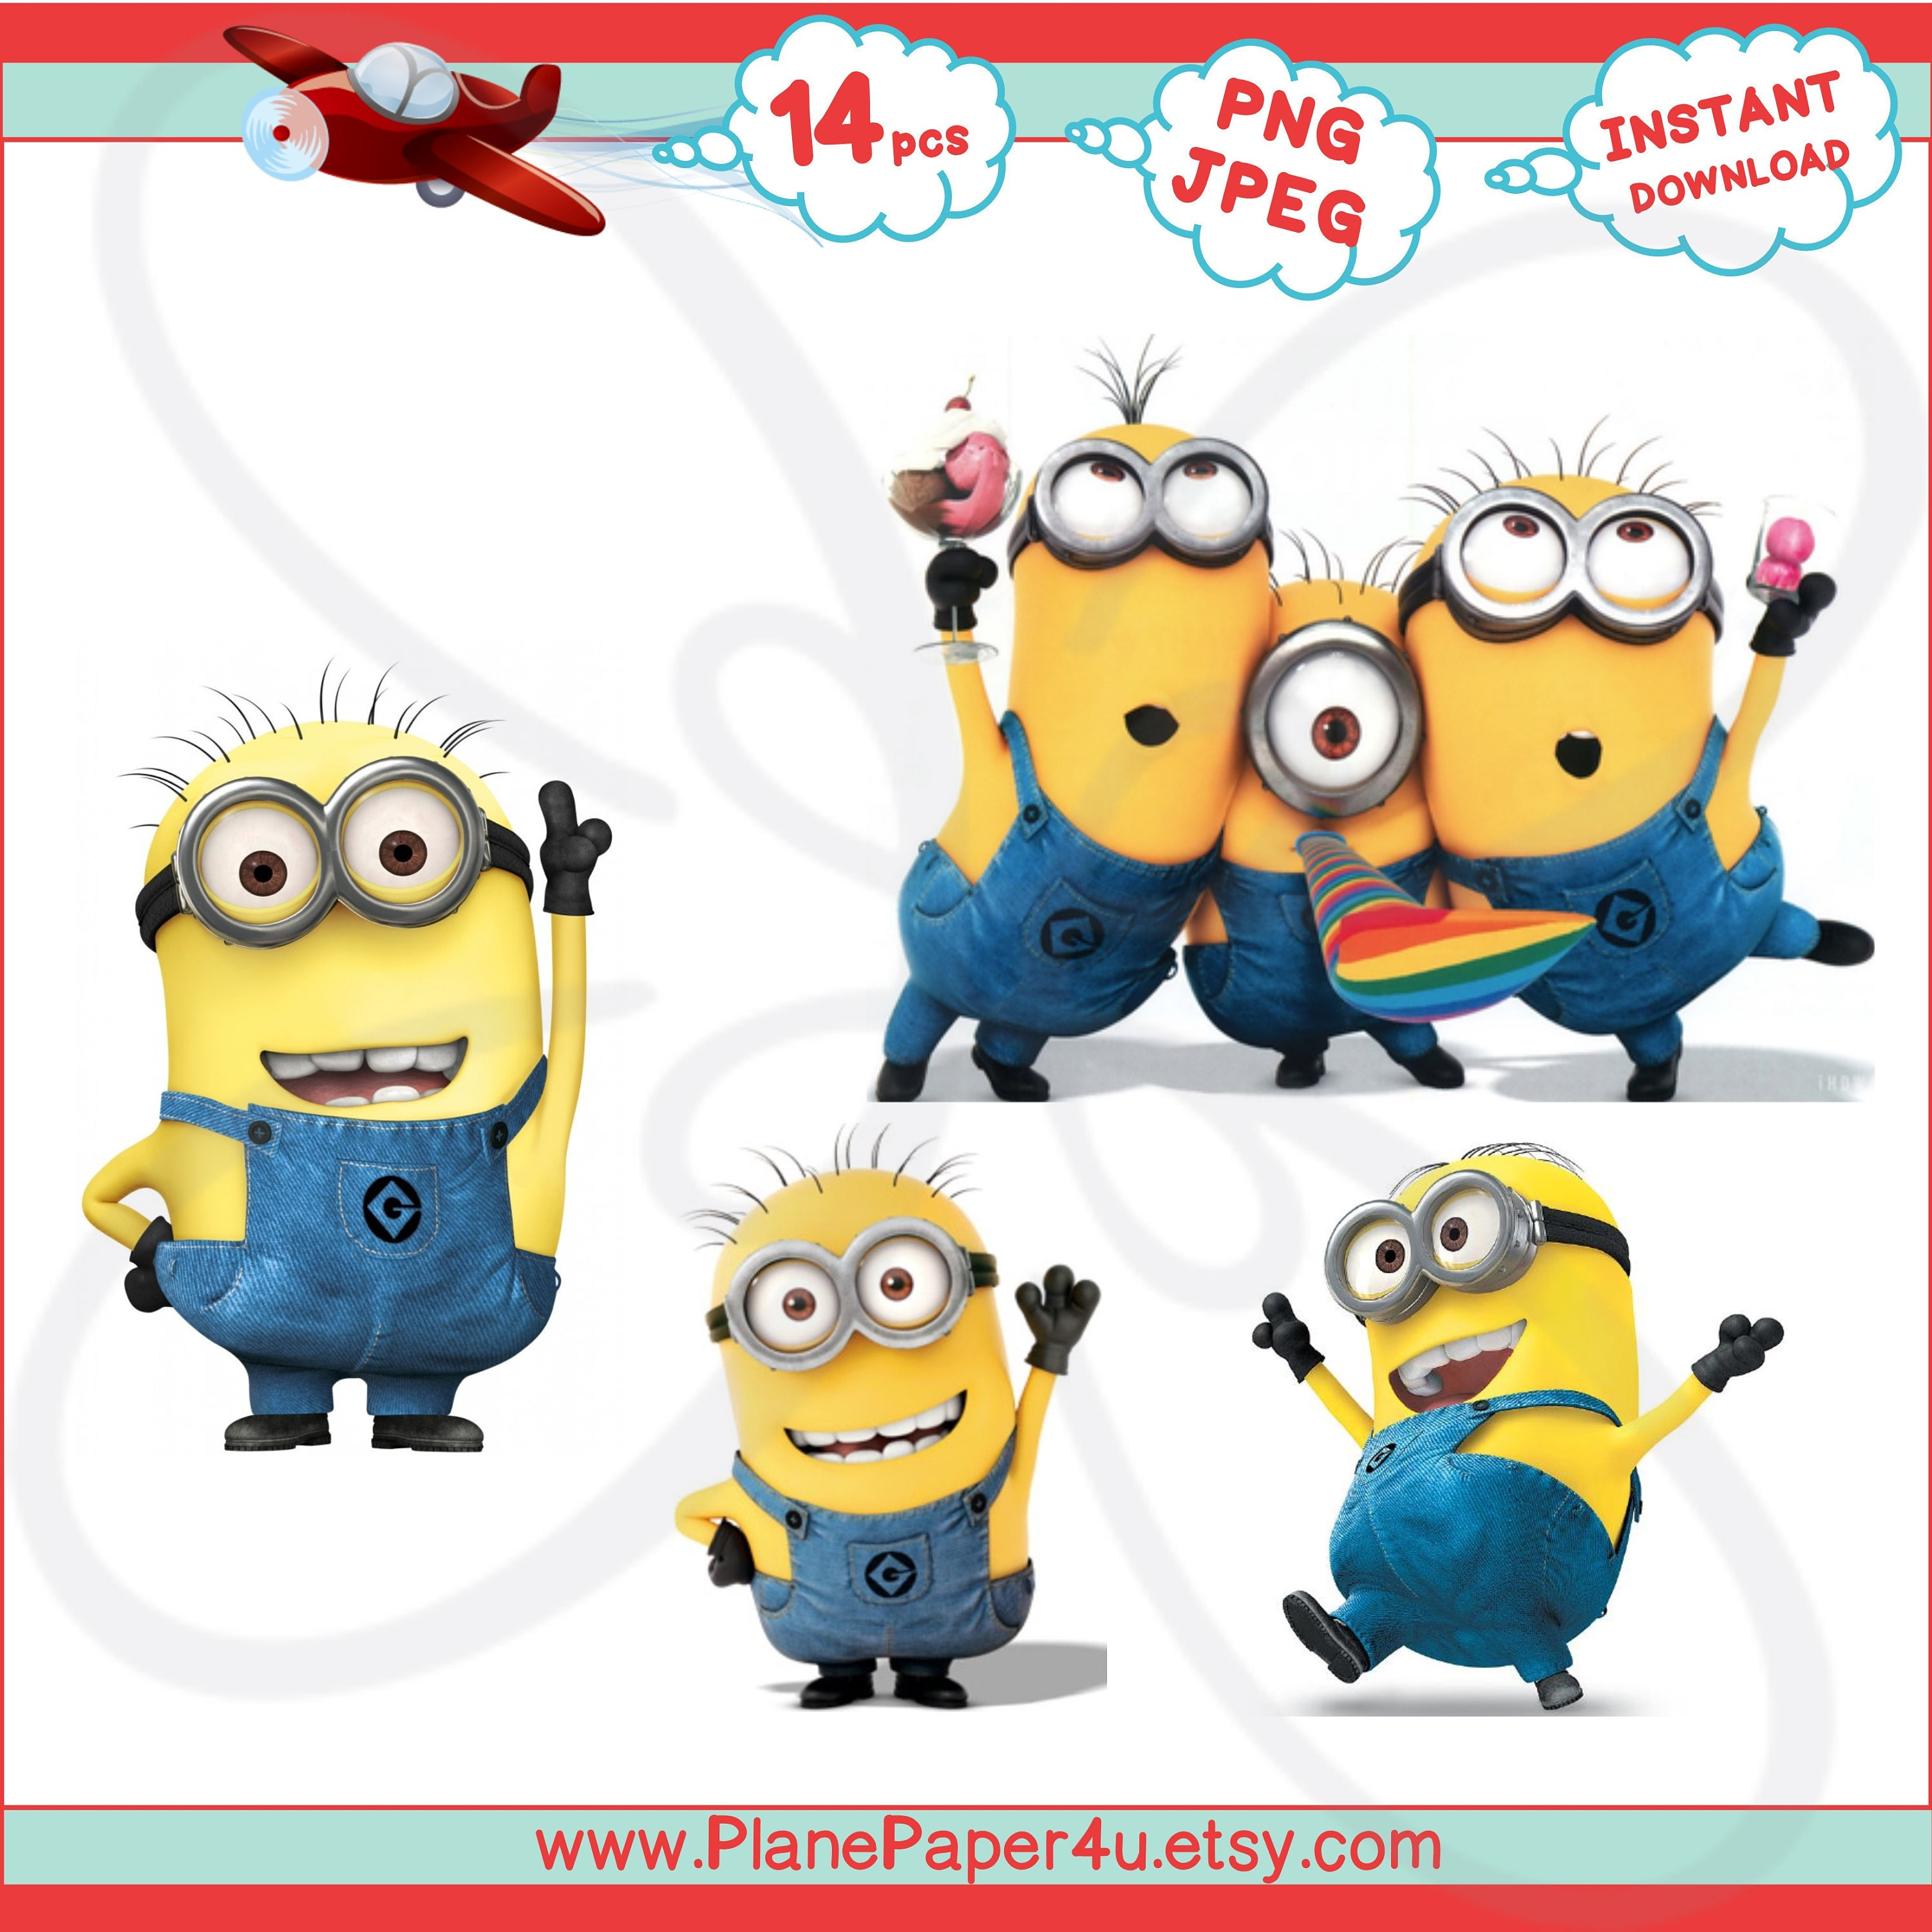 graphic about Minion Printable Cutouts identify MINIONS Immediate Electronic Down load- Heavy Cutouts, Birthday Social gathering Decorations, Printables, Card Generating, Sbooking, Despicable Me Clip artwork